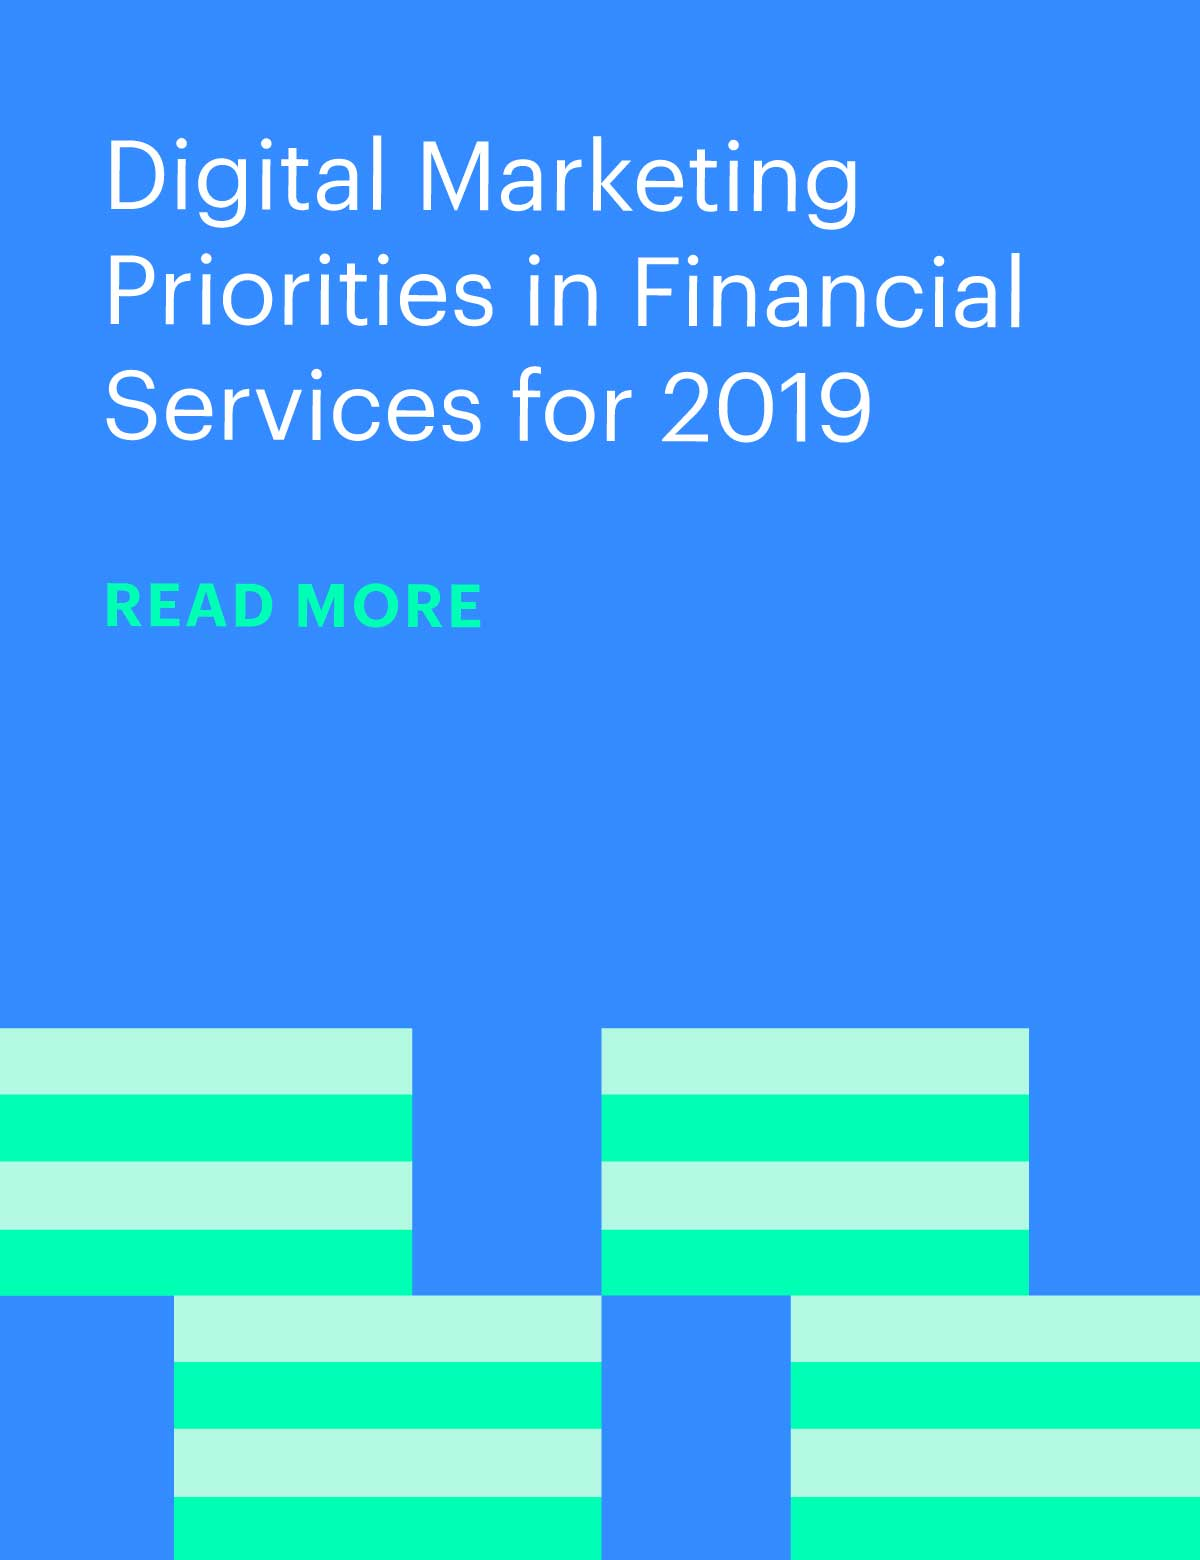 Digital Marketing Priorities in Financial Services for 2019